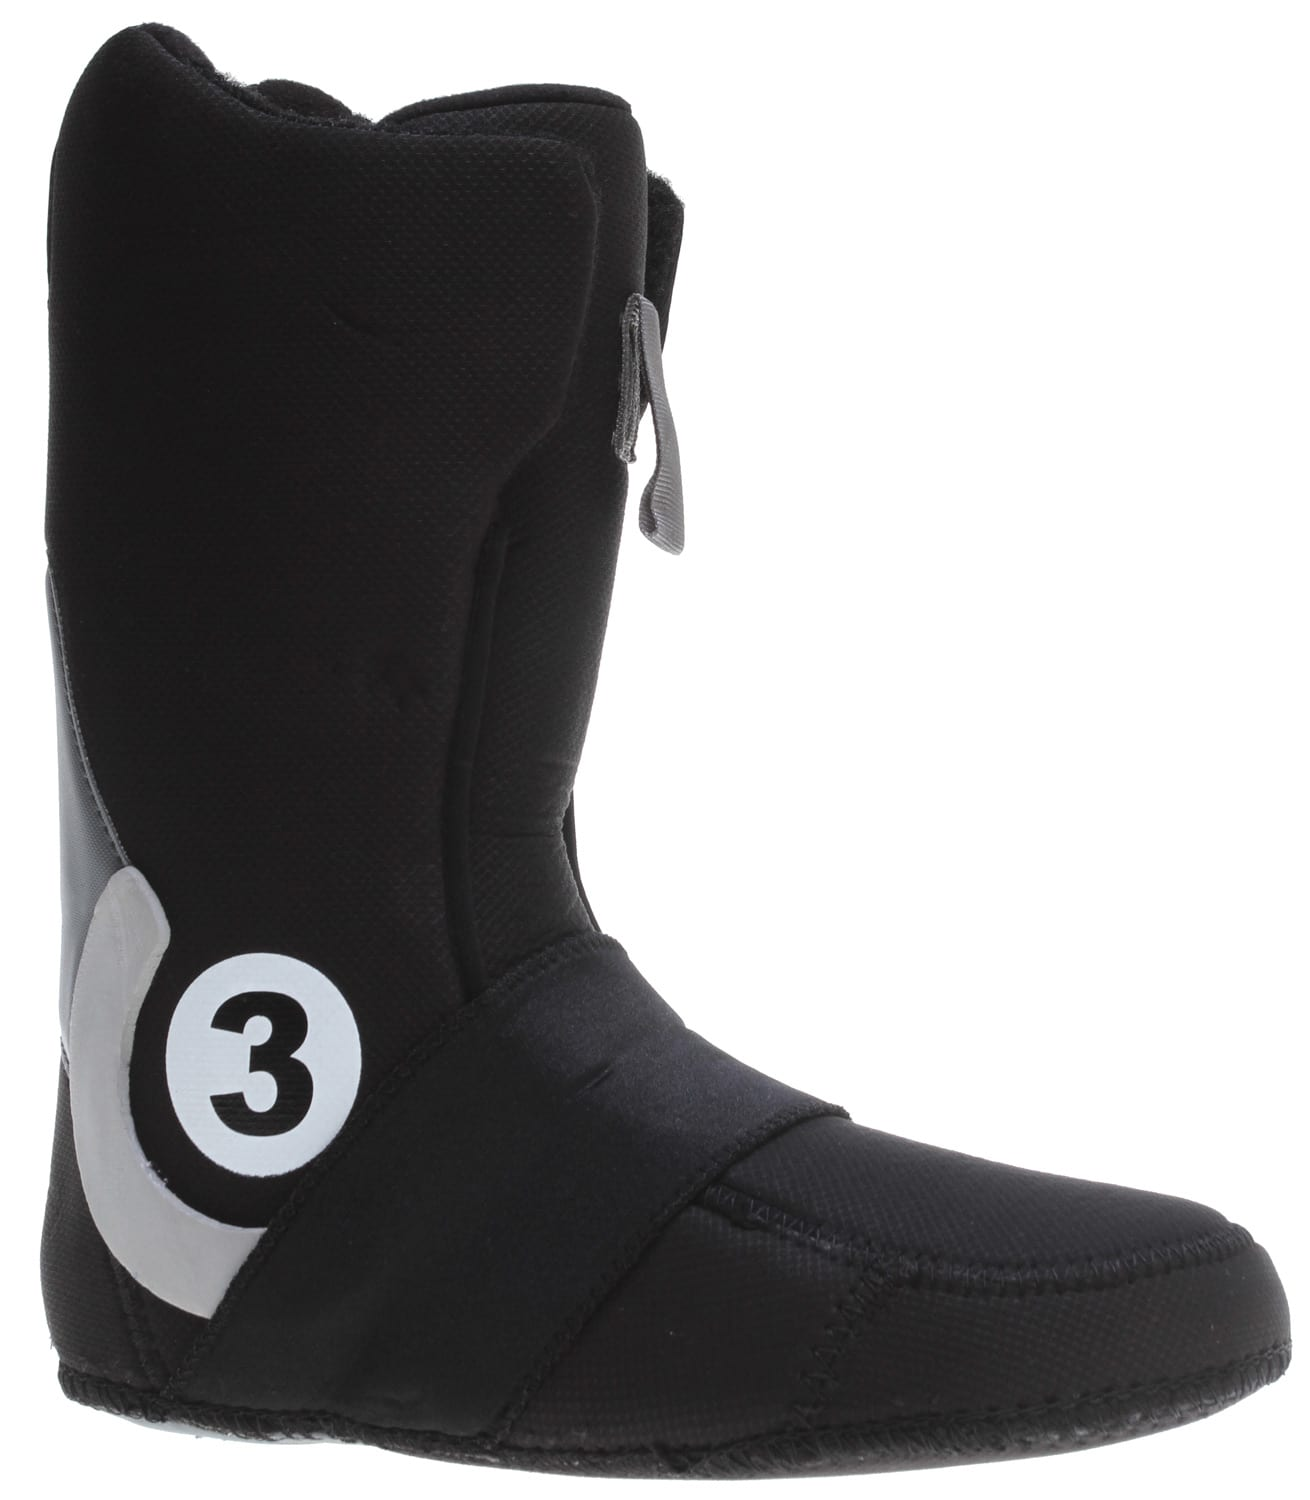 On Sale Forum Kicker Snowboard Boots up to 80% off |Snowboarding Kickers